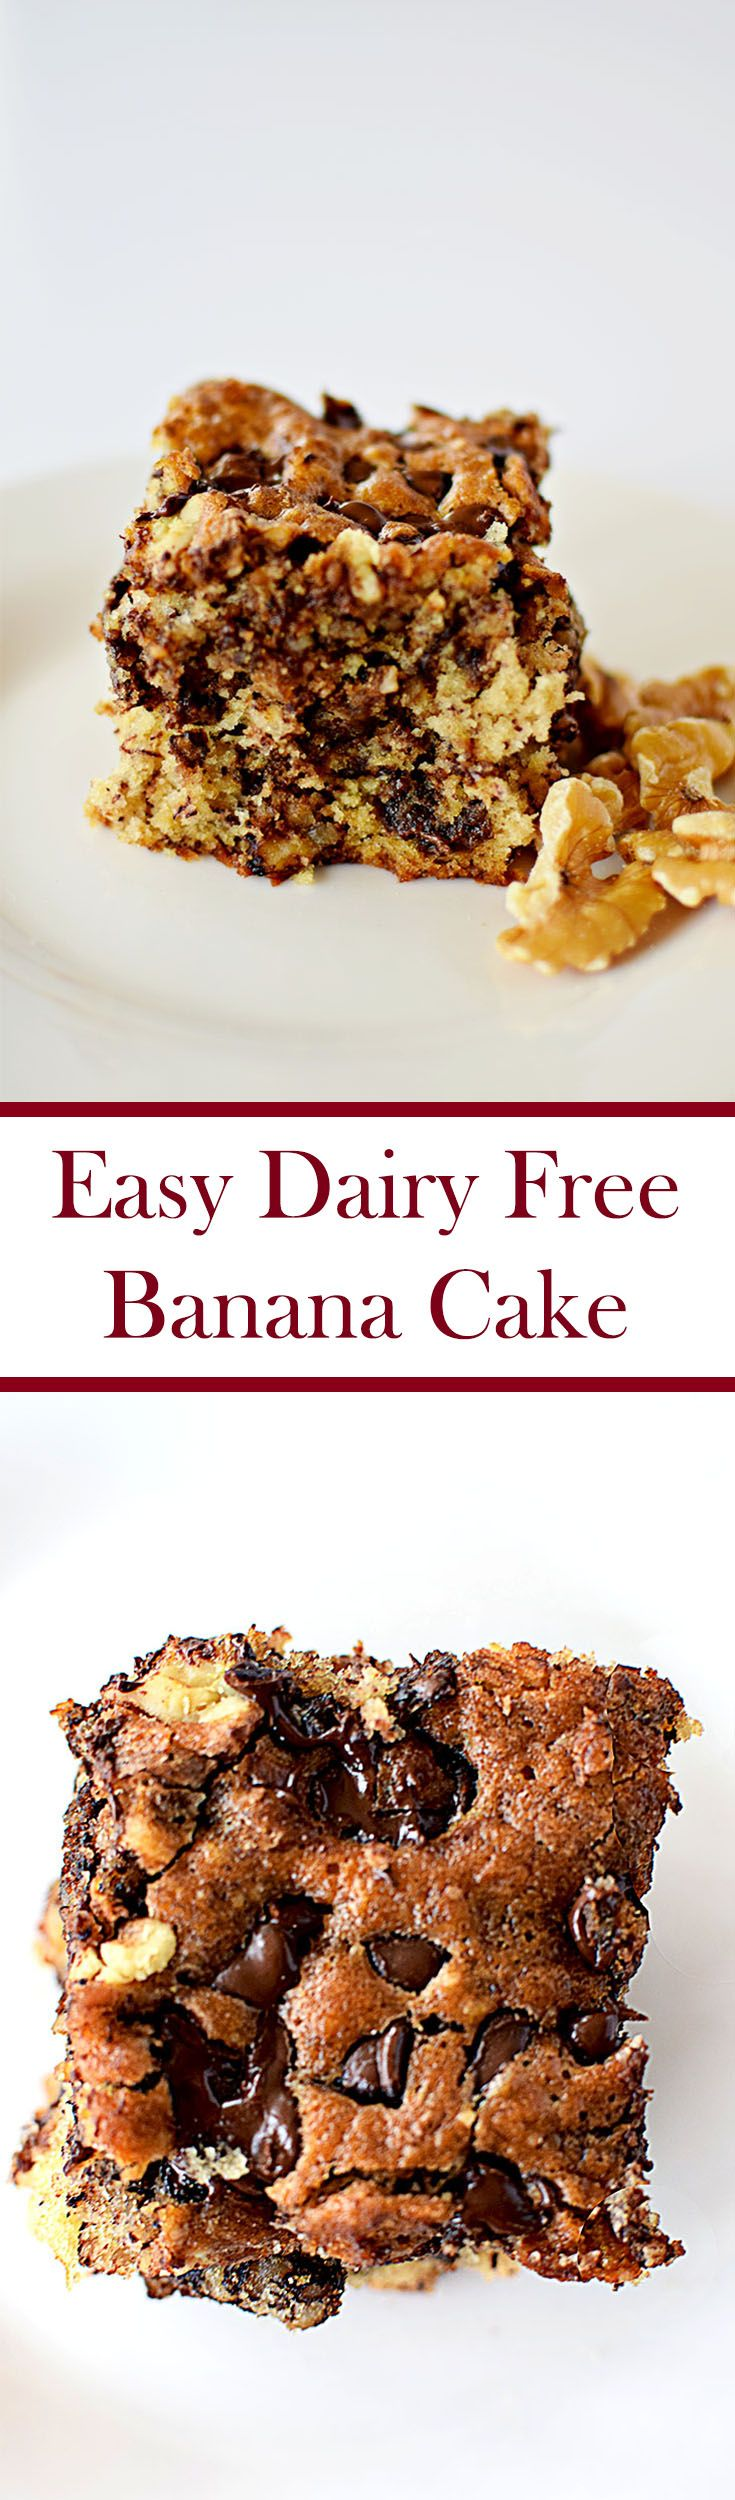 28+ Banana cake recipe with oil and milk inspirations